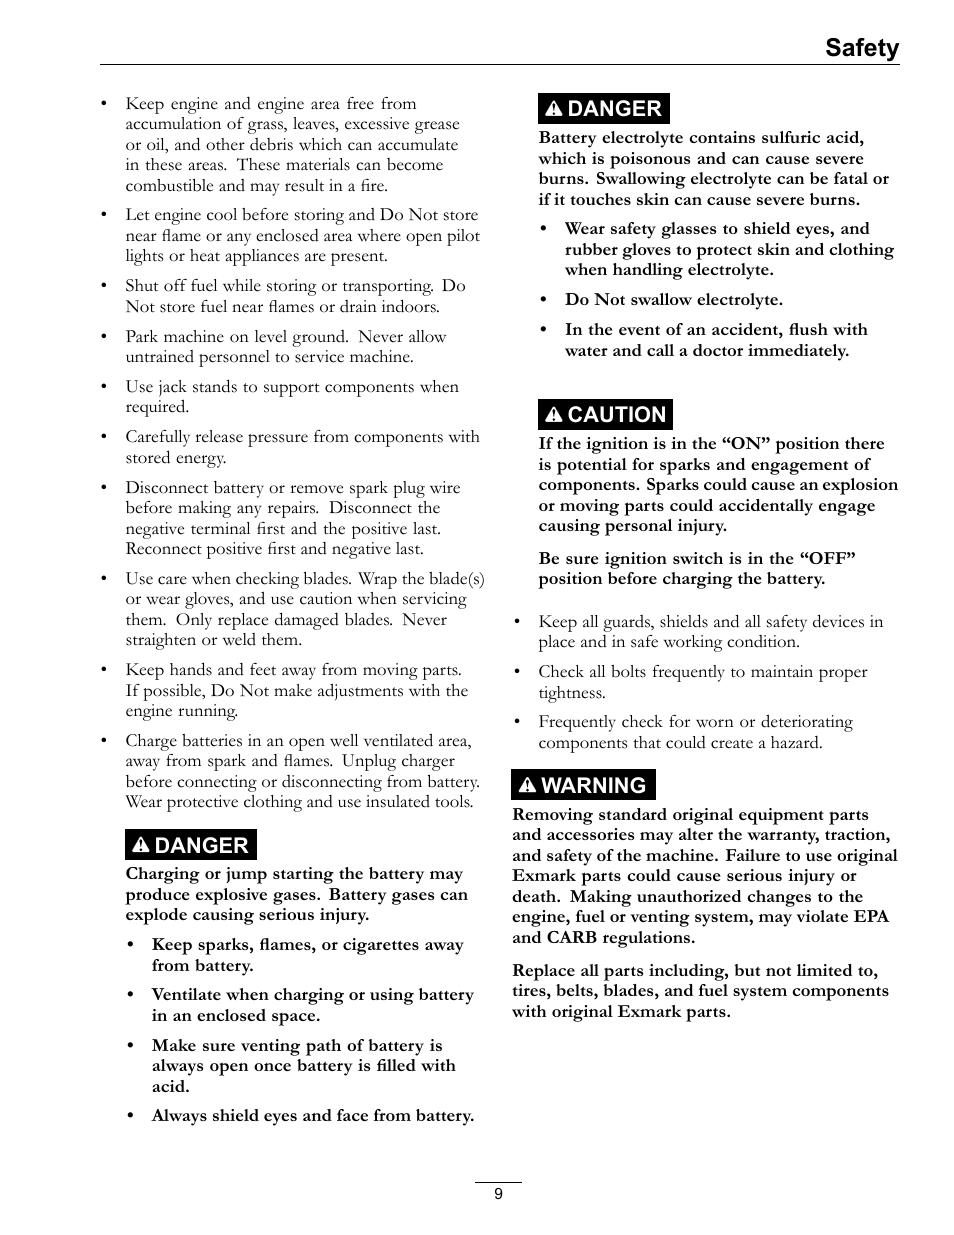 Safety | Exmark lazer Z E-Series 312 User Manual | Page 9 / 60